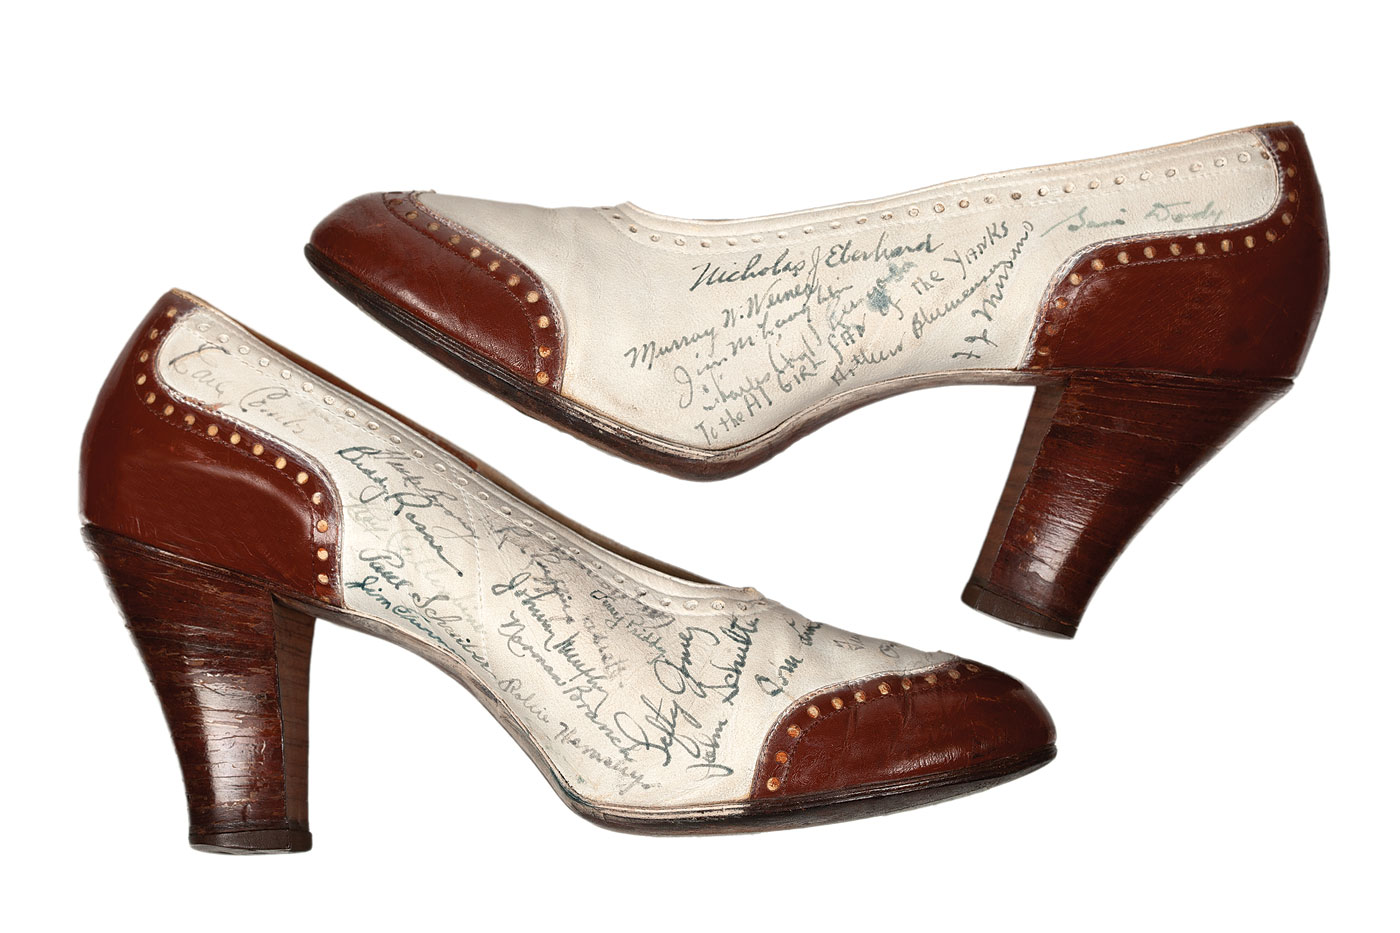 Walk This Way:  SPECTATOR PUMPS of leather, circa 1936. During Joe DiMaggio's rookie year with the Yankees, he had his teammates sign a pair of his girlfriend's shoes. Twenty-seven players autographed this otherwise ordinary pair of pumps. Fourteen of the players were future winners of the 1941 World Series.